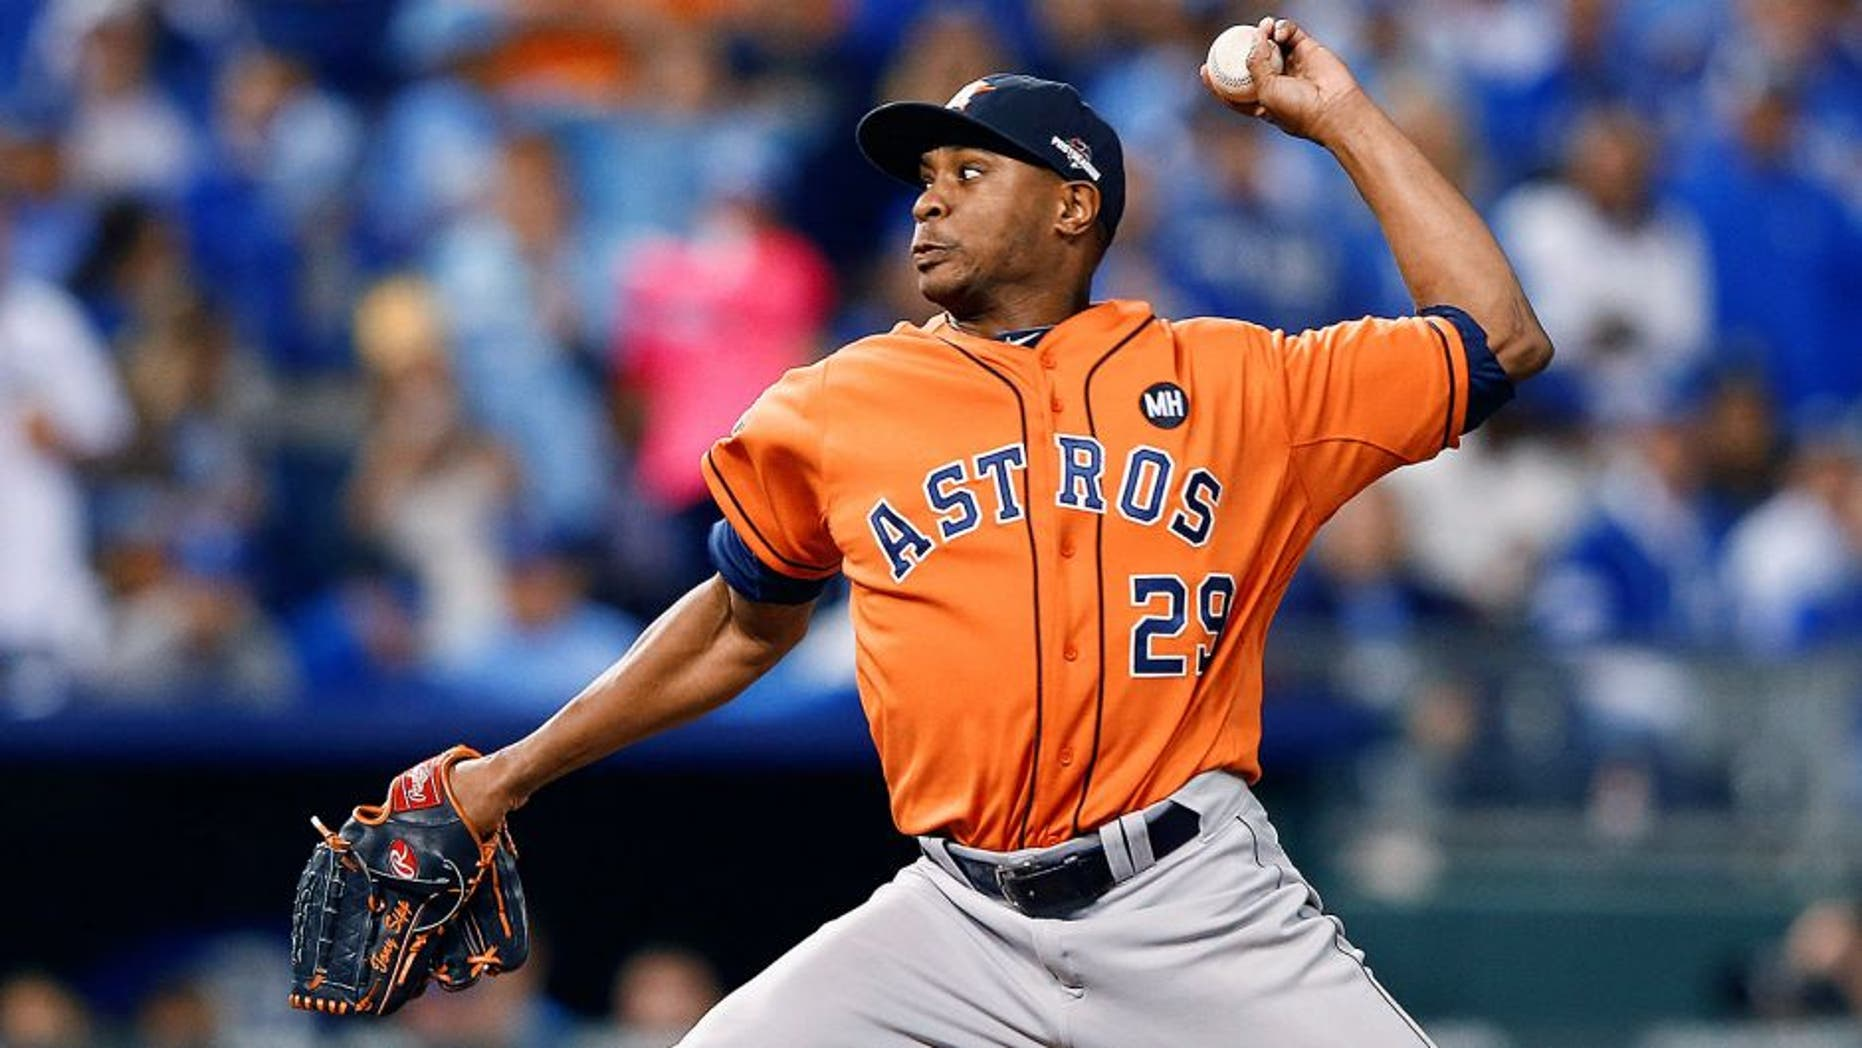 KANSAS CITY, MO - OCTOBER 14: Tony Sipp #29 of the Houston Astros throws a pitch in the sixth inning against the Kansas City Royals during game five of the American League Divison Series at Kauffman Stadium on October 14, 2015 in Kansas City, Missouri. (Photo by Jamie Squire/Getty Images)